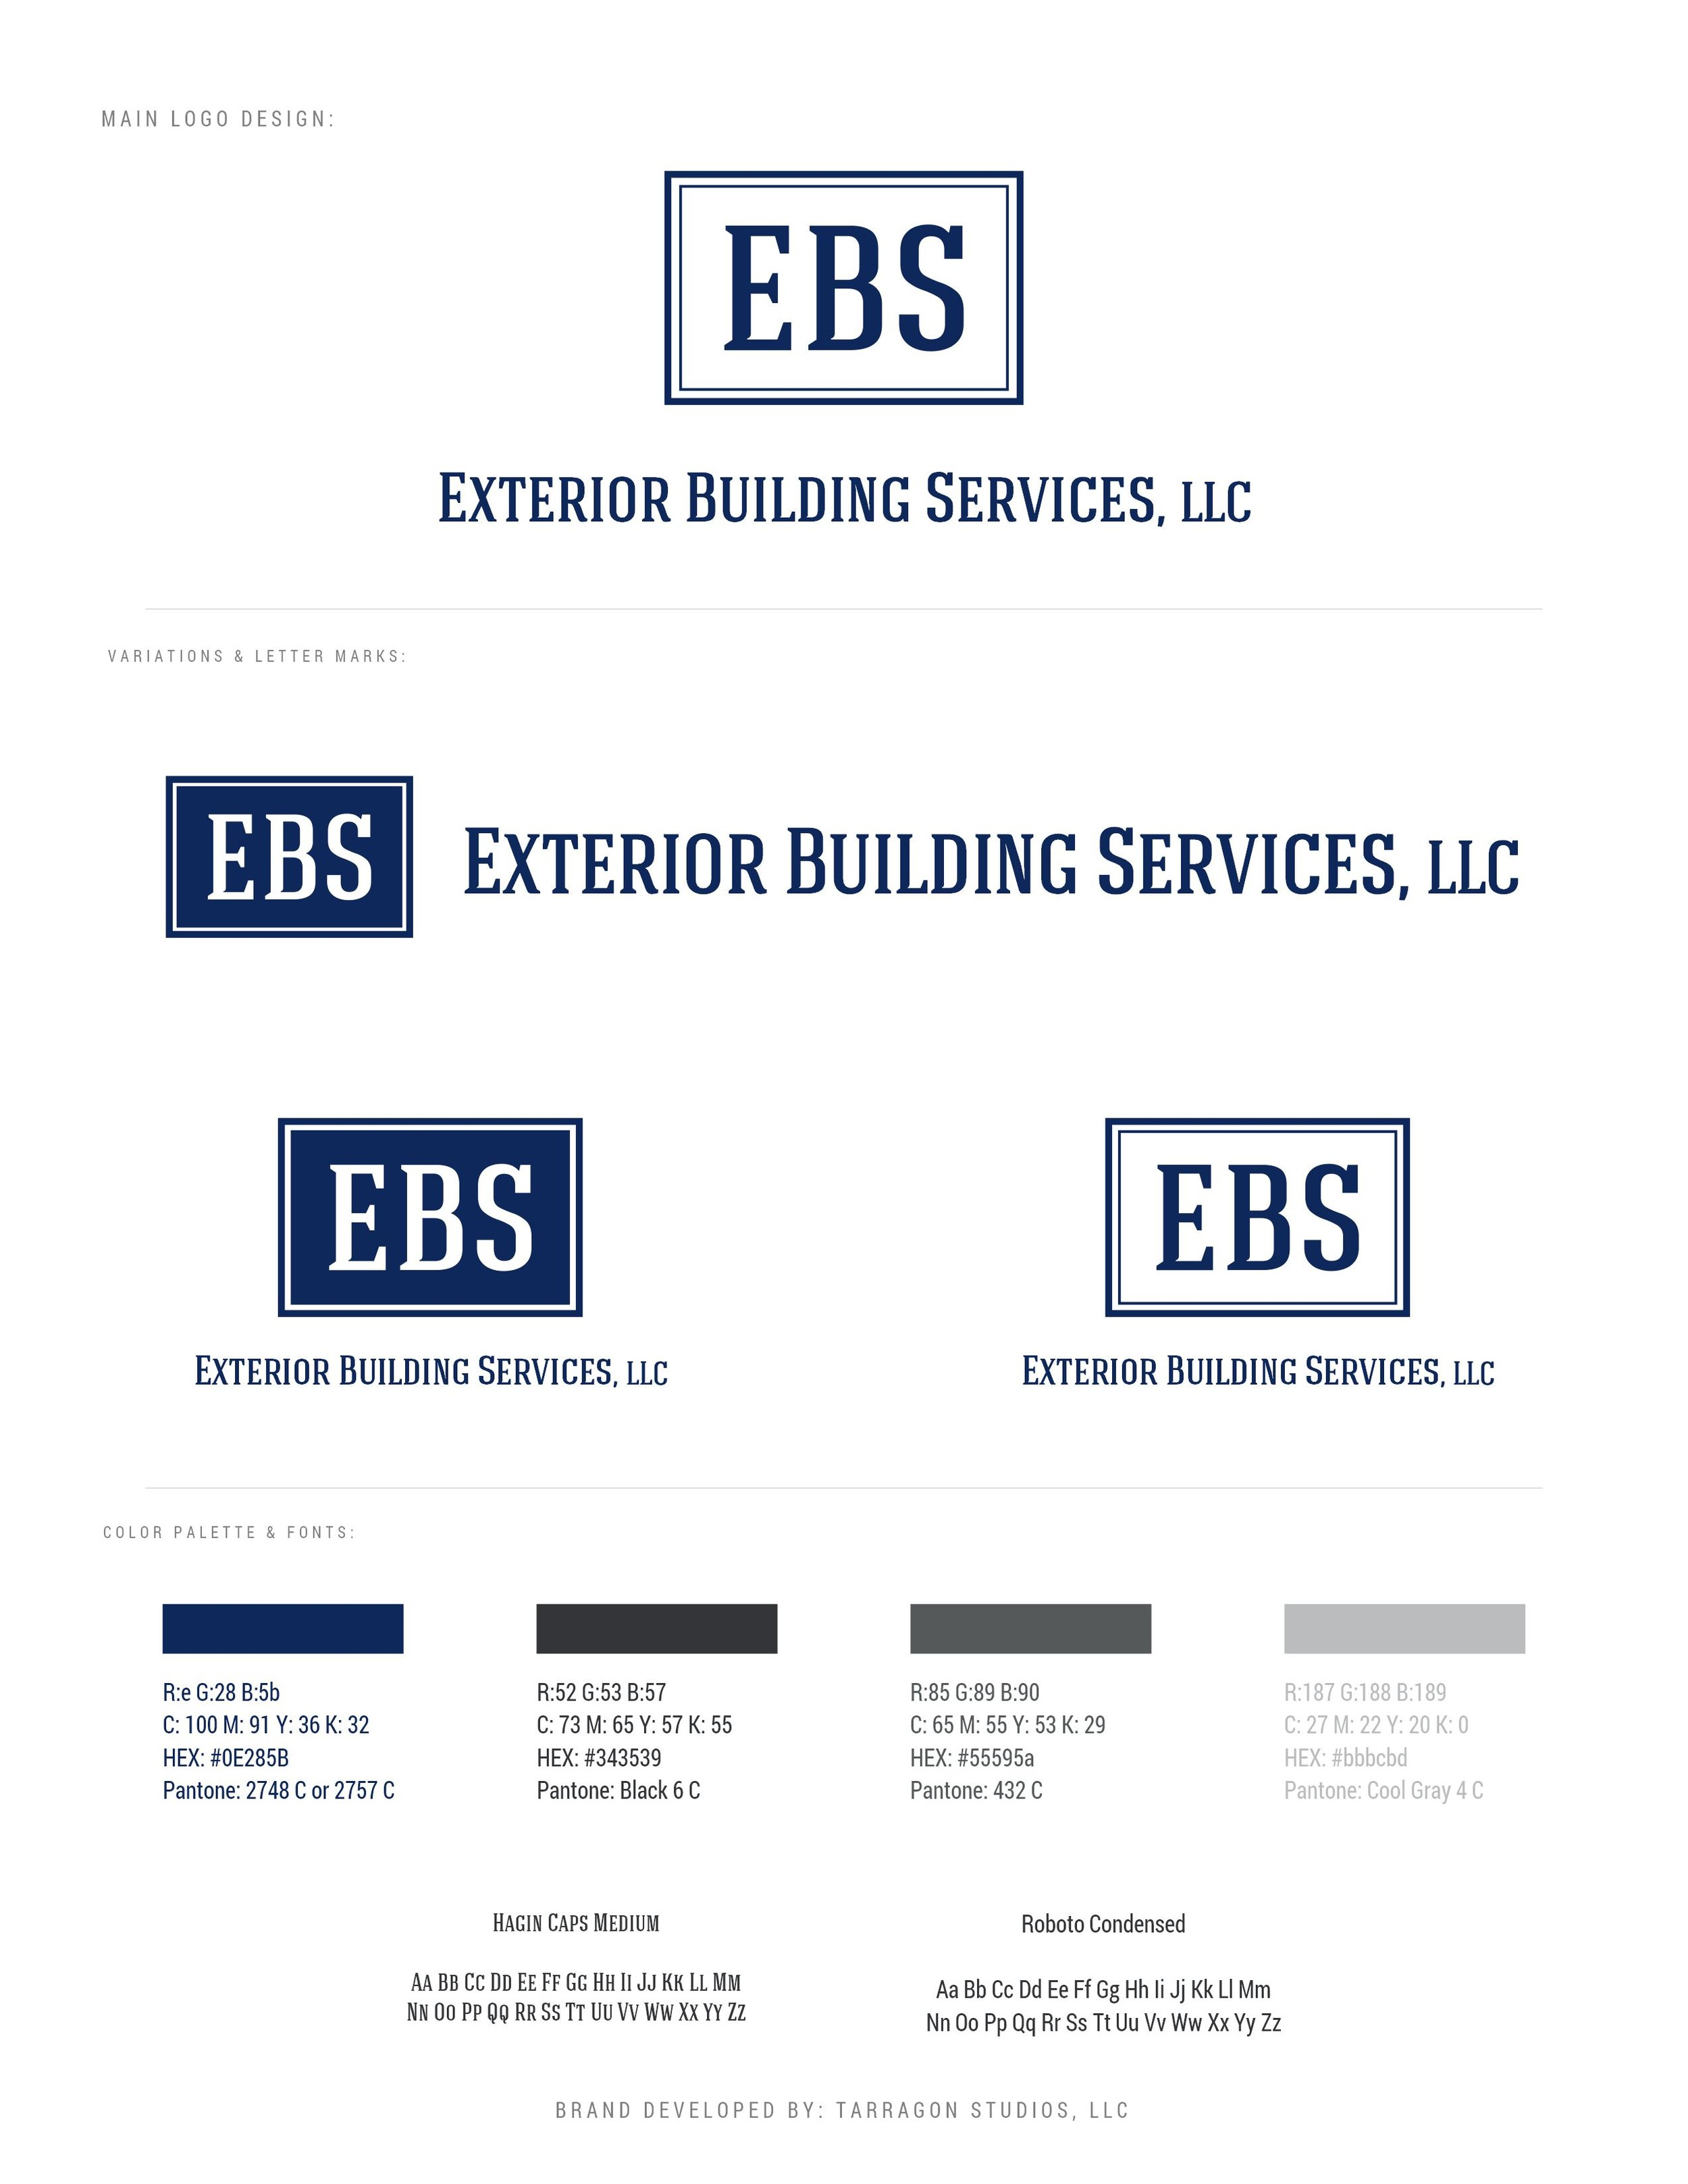 This style guide is for Construction company Exterior Building Services, LLC (EBS) - Brand designed by Tarragon Studios. Keep Reading to learn more about this project! #logo #design #masculine #strong